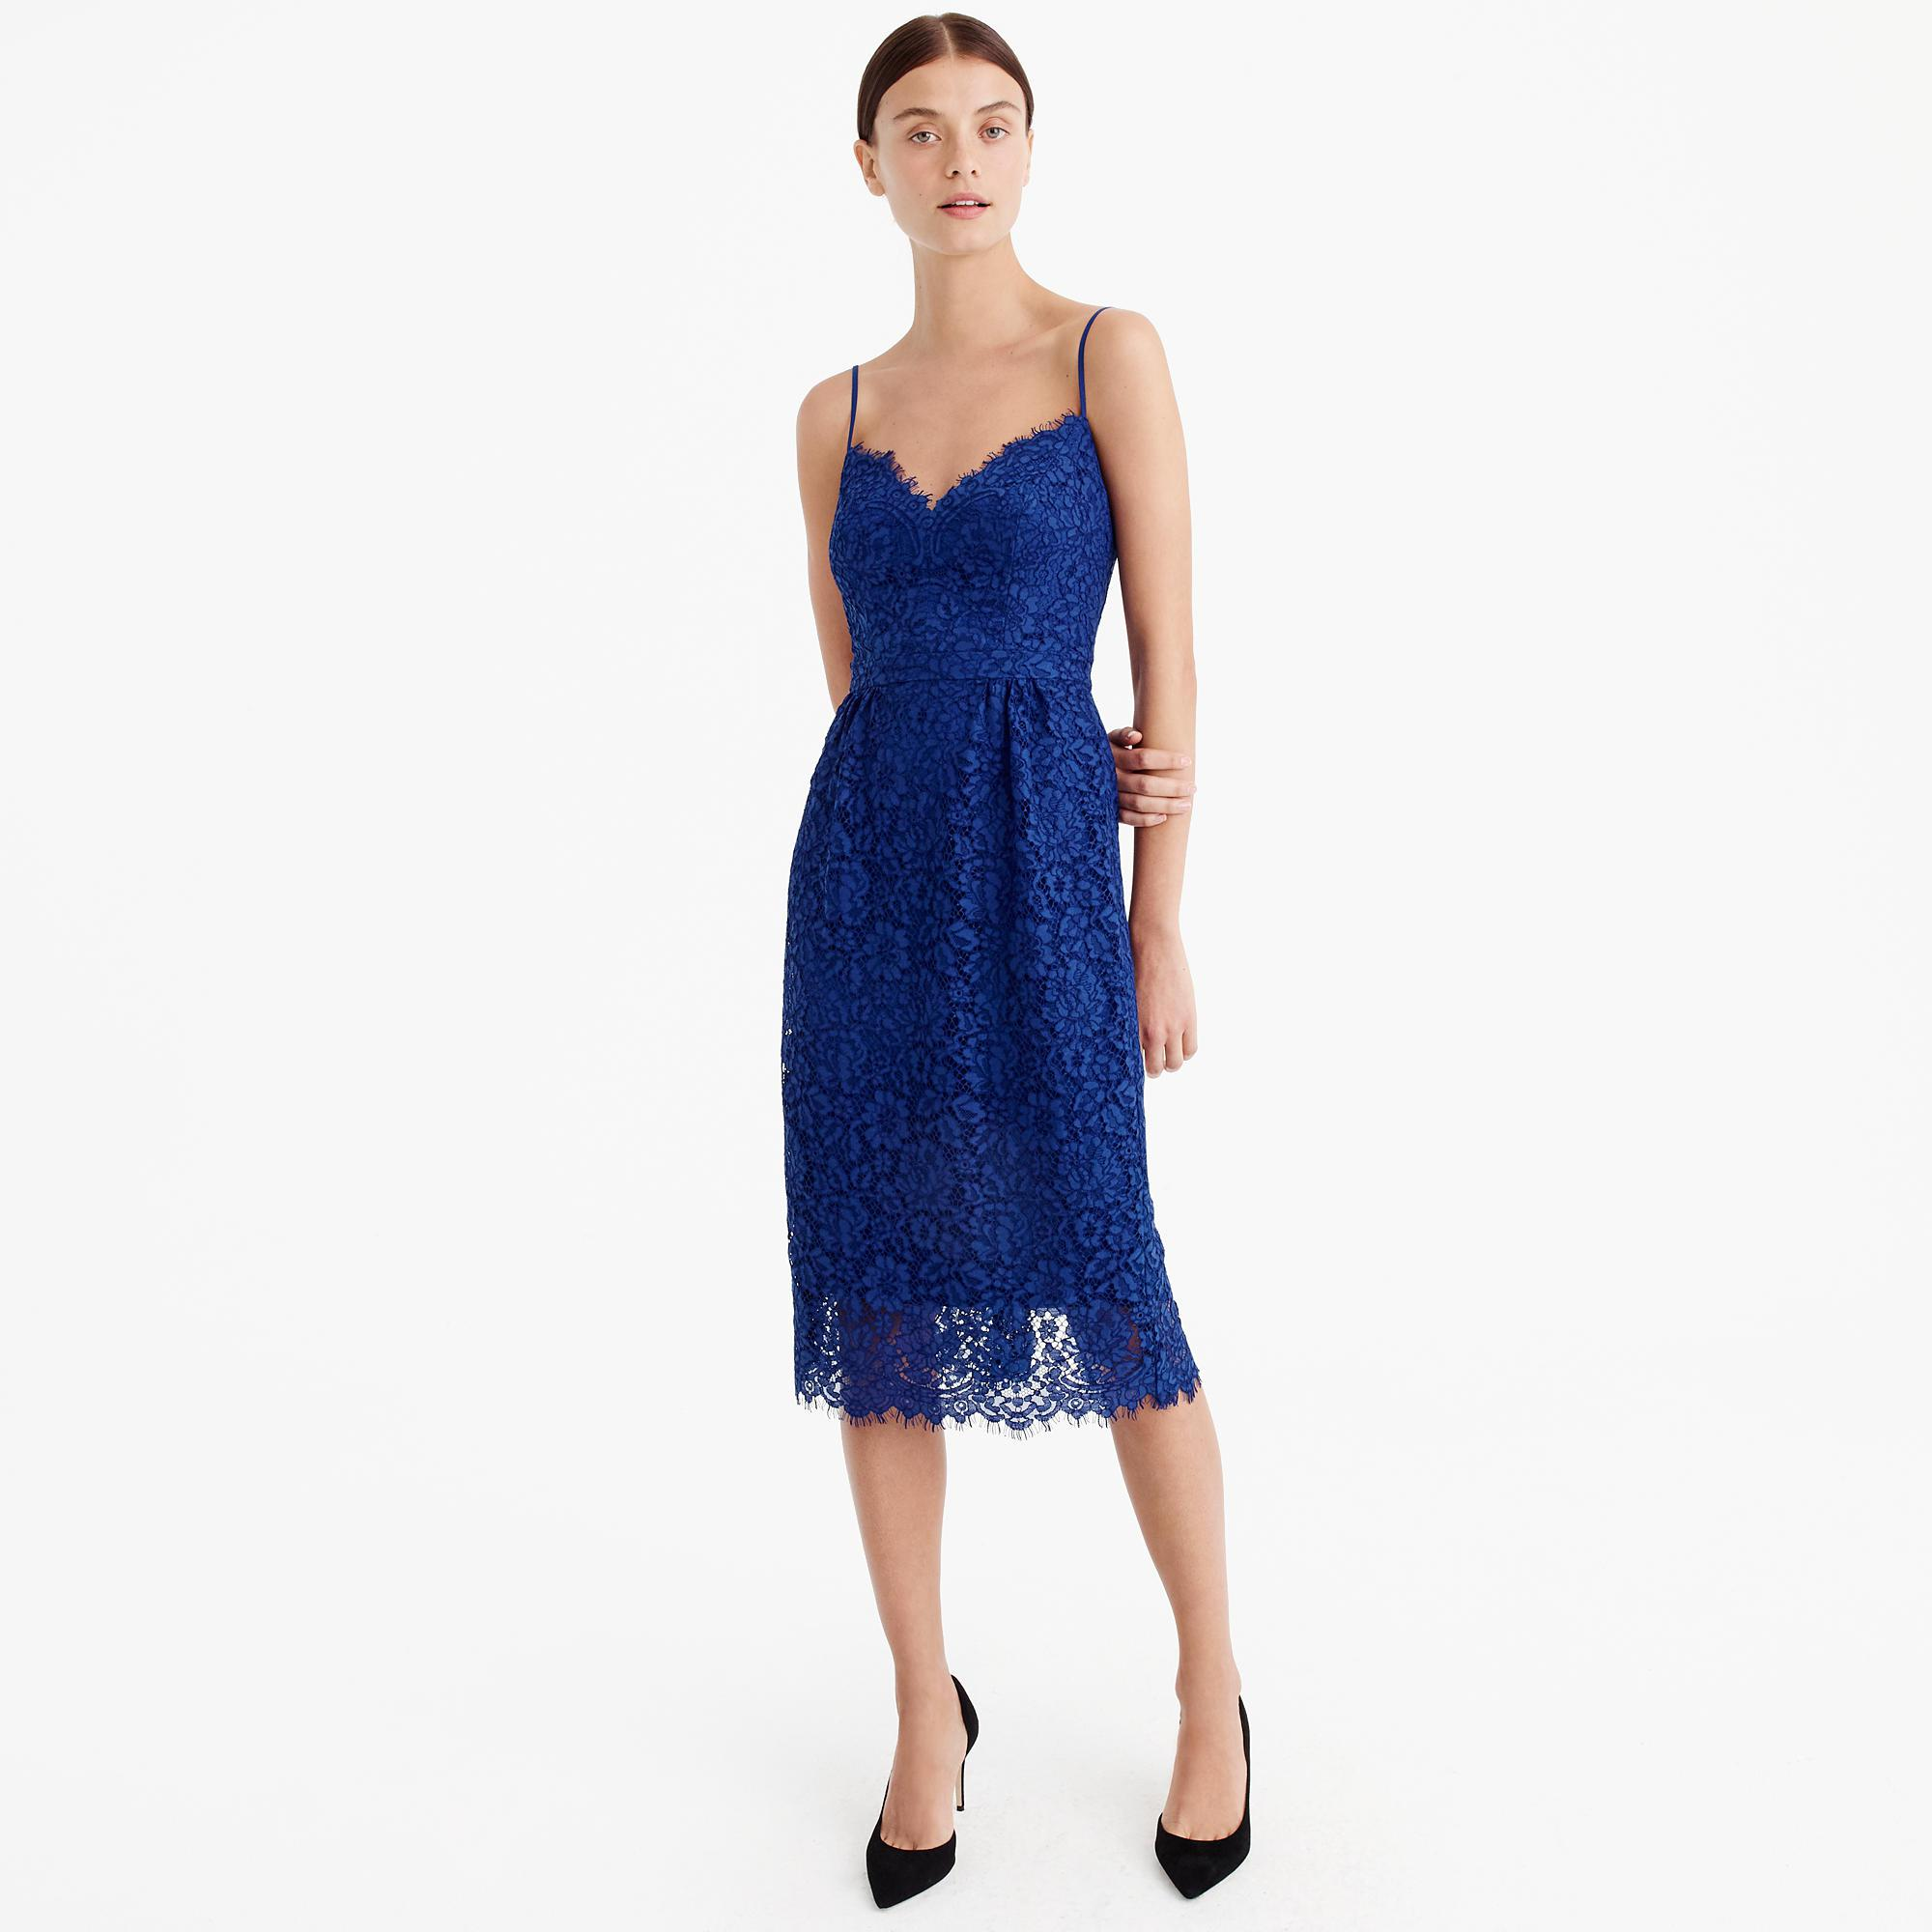 Lyst - J.Crew Perfect Party Dress in Blue